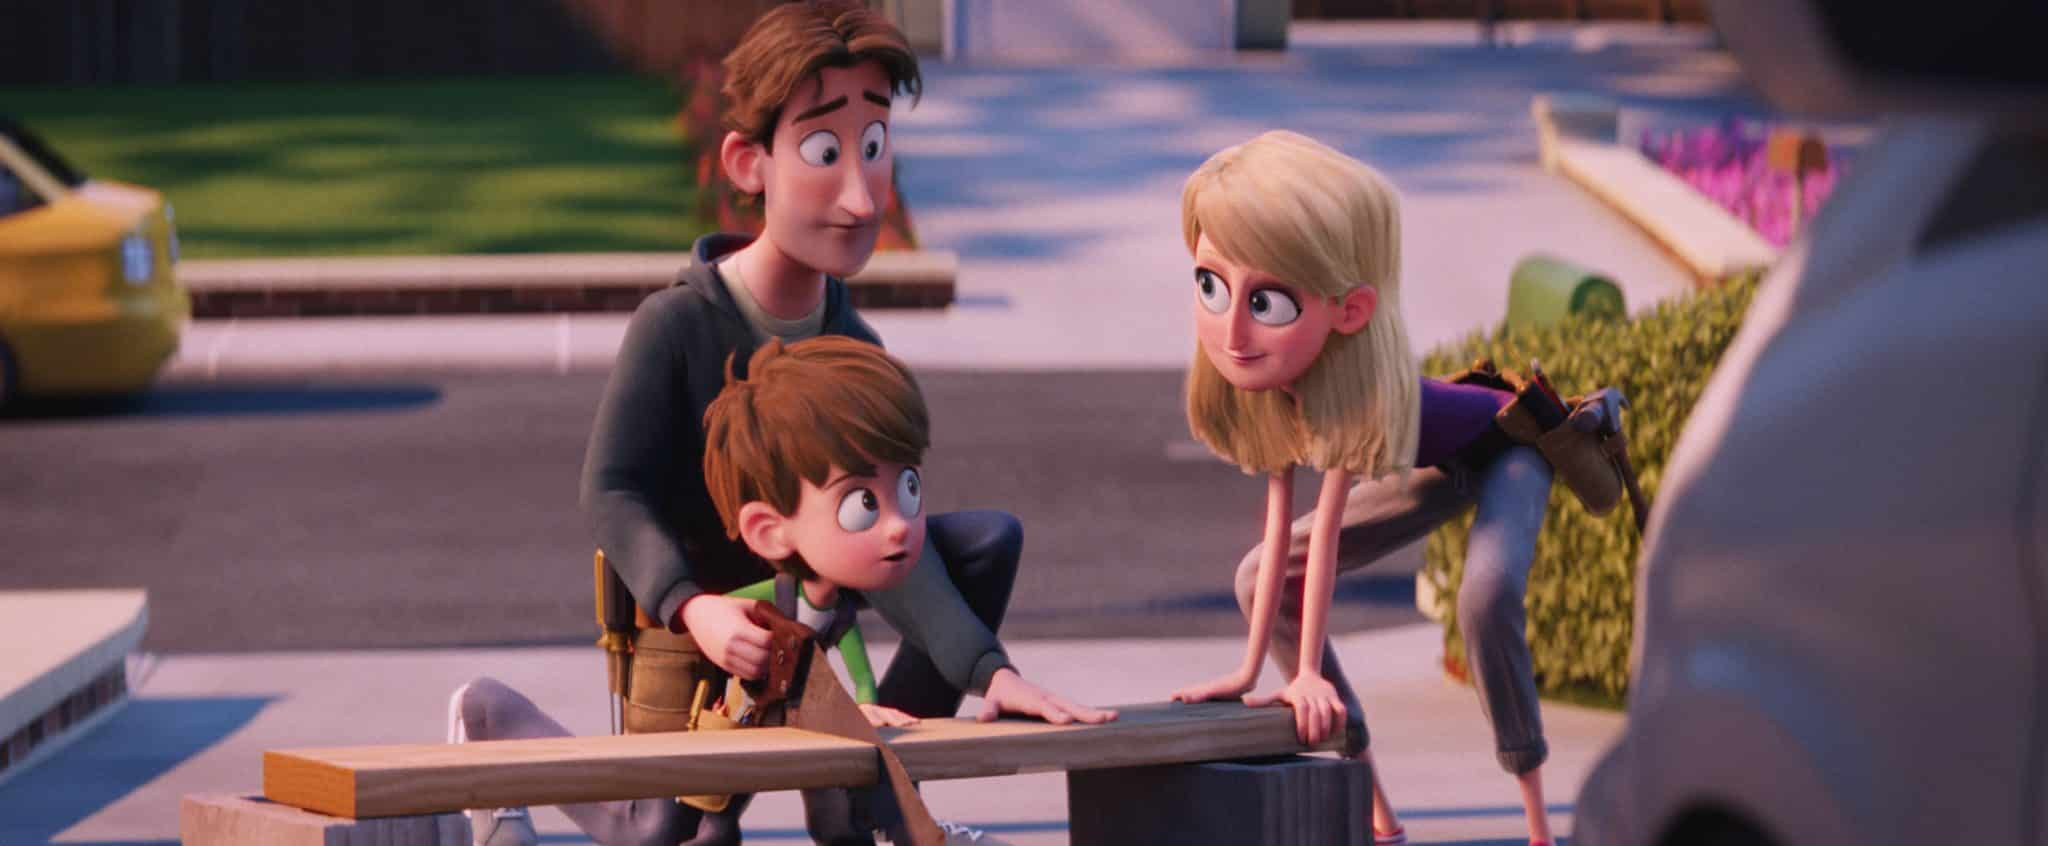 watch storks free full movie